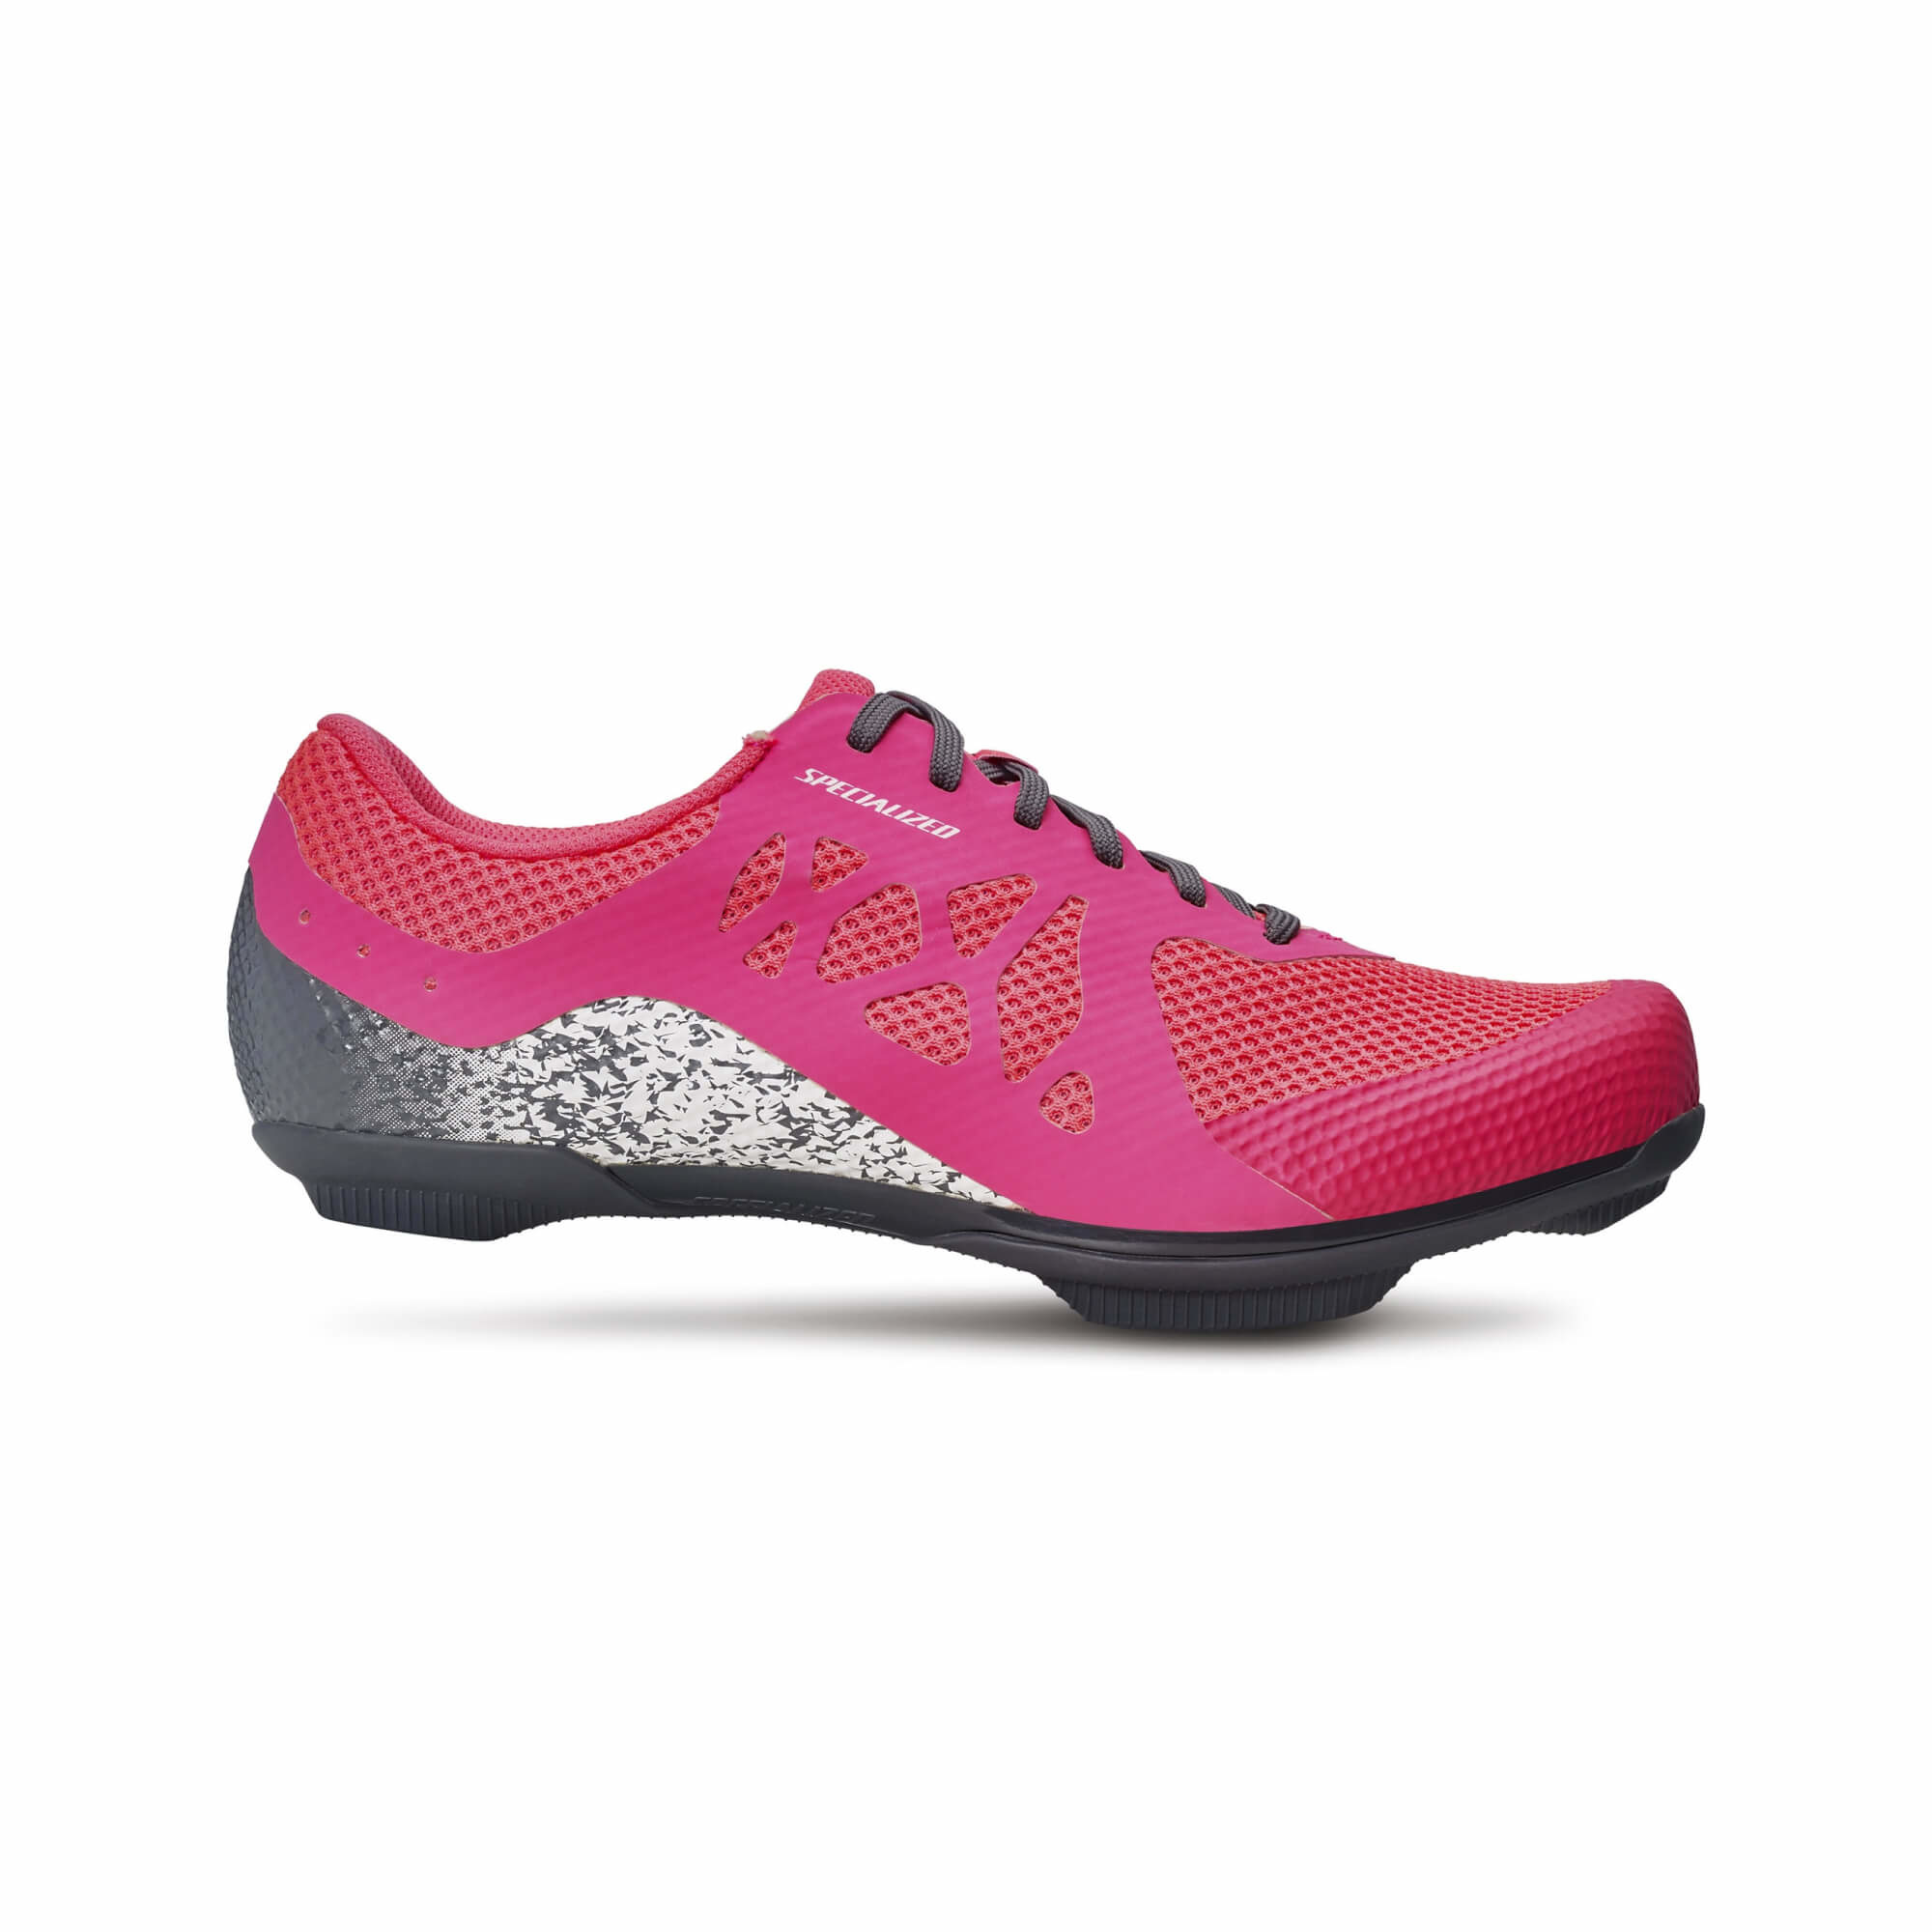 Remix Rd Shoe Wmn Epnk/Clgry 43 Size: 43-1